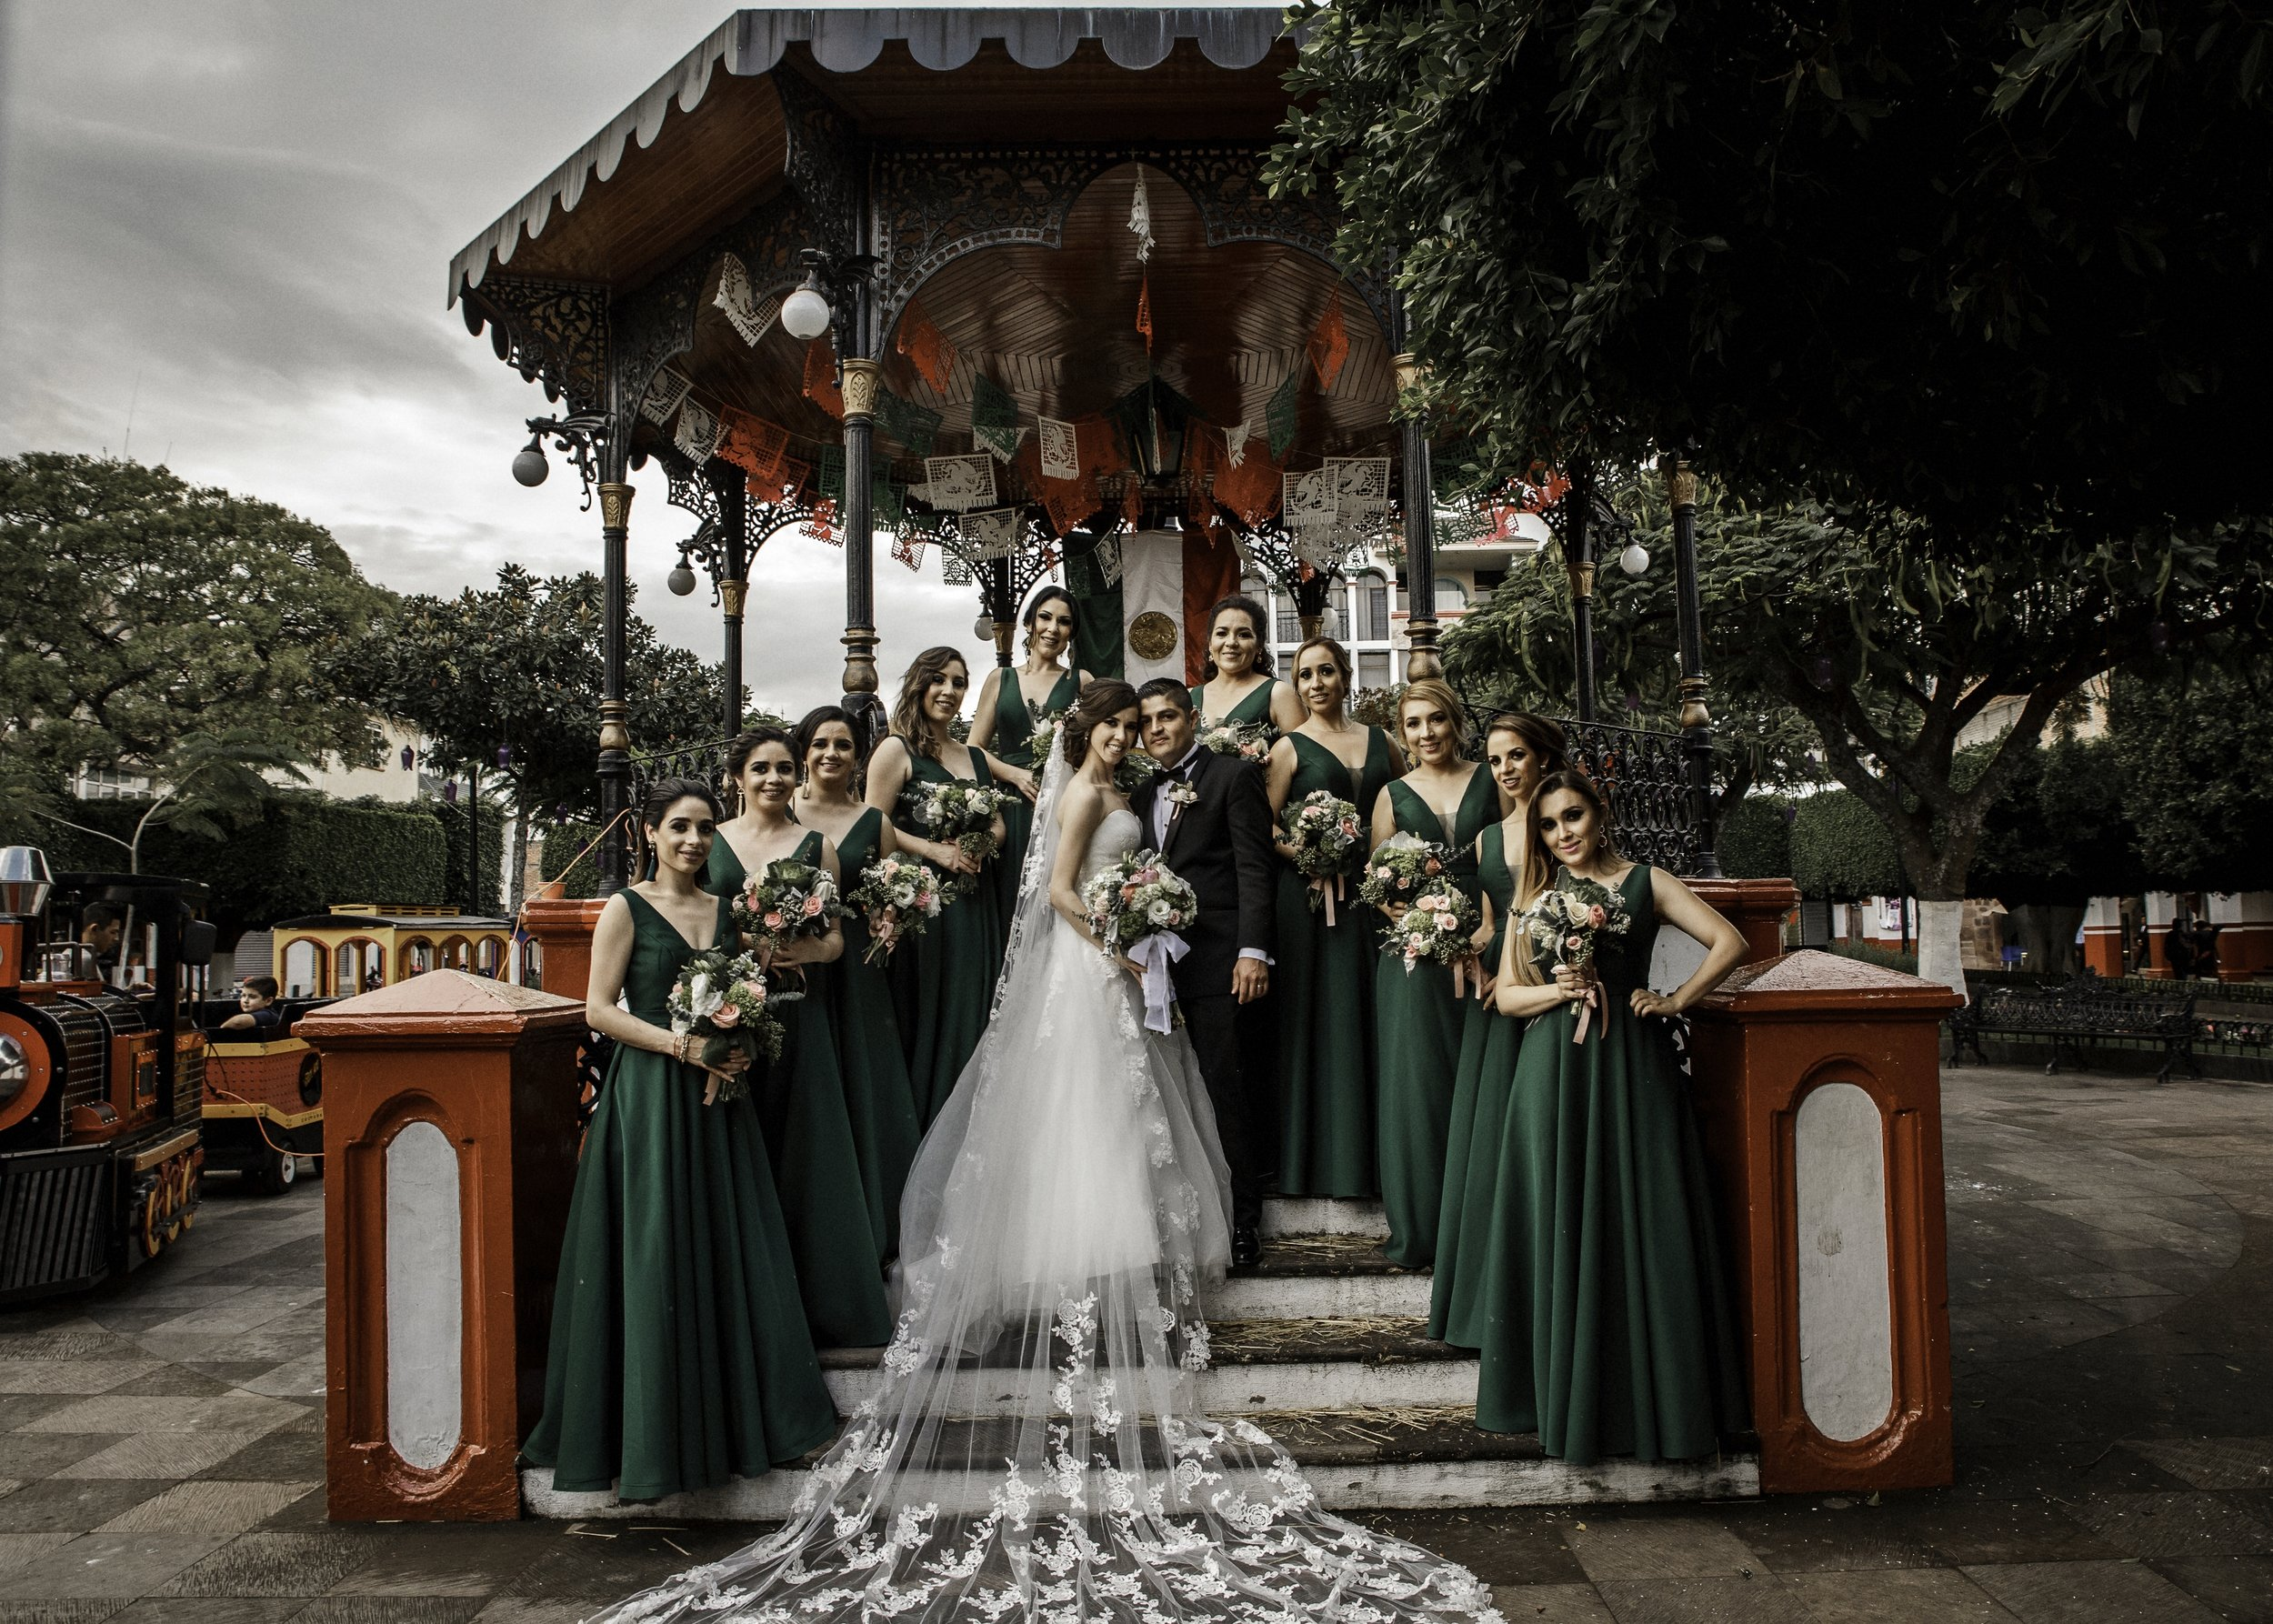 ODEMARIS_DANIEL-96carotida_photographer_boda_wedding.jpg